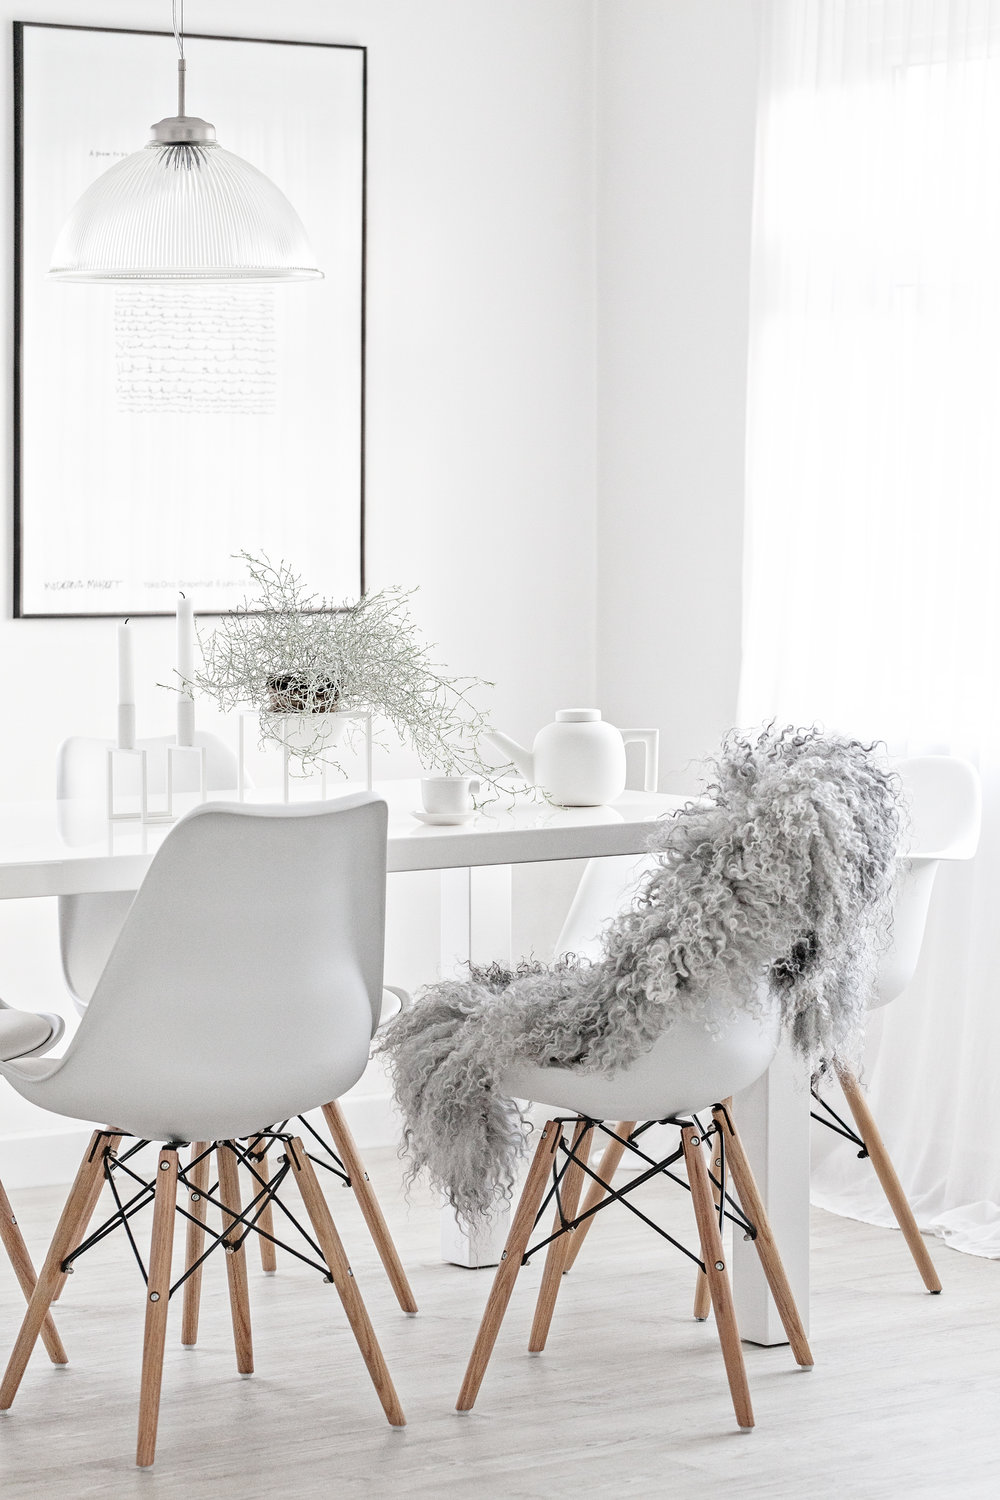 Grey Pelssau Sheepskin Rug from Milabert | White Ceramic Tea Pot & Cups from Serax Belgium by Catherine Lovatt | White Eames Style Chairs from Cult Furniture | White Kubus Line from By Lassen & Kubus Bowl from Made Modern